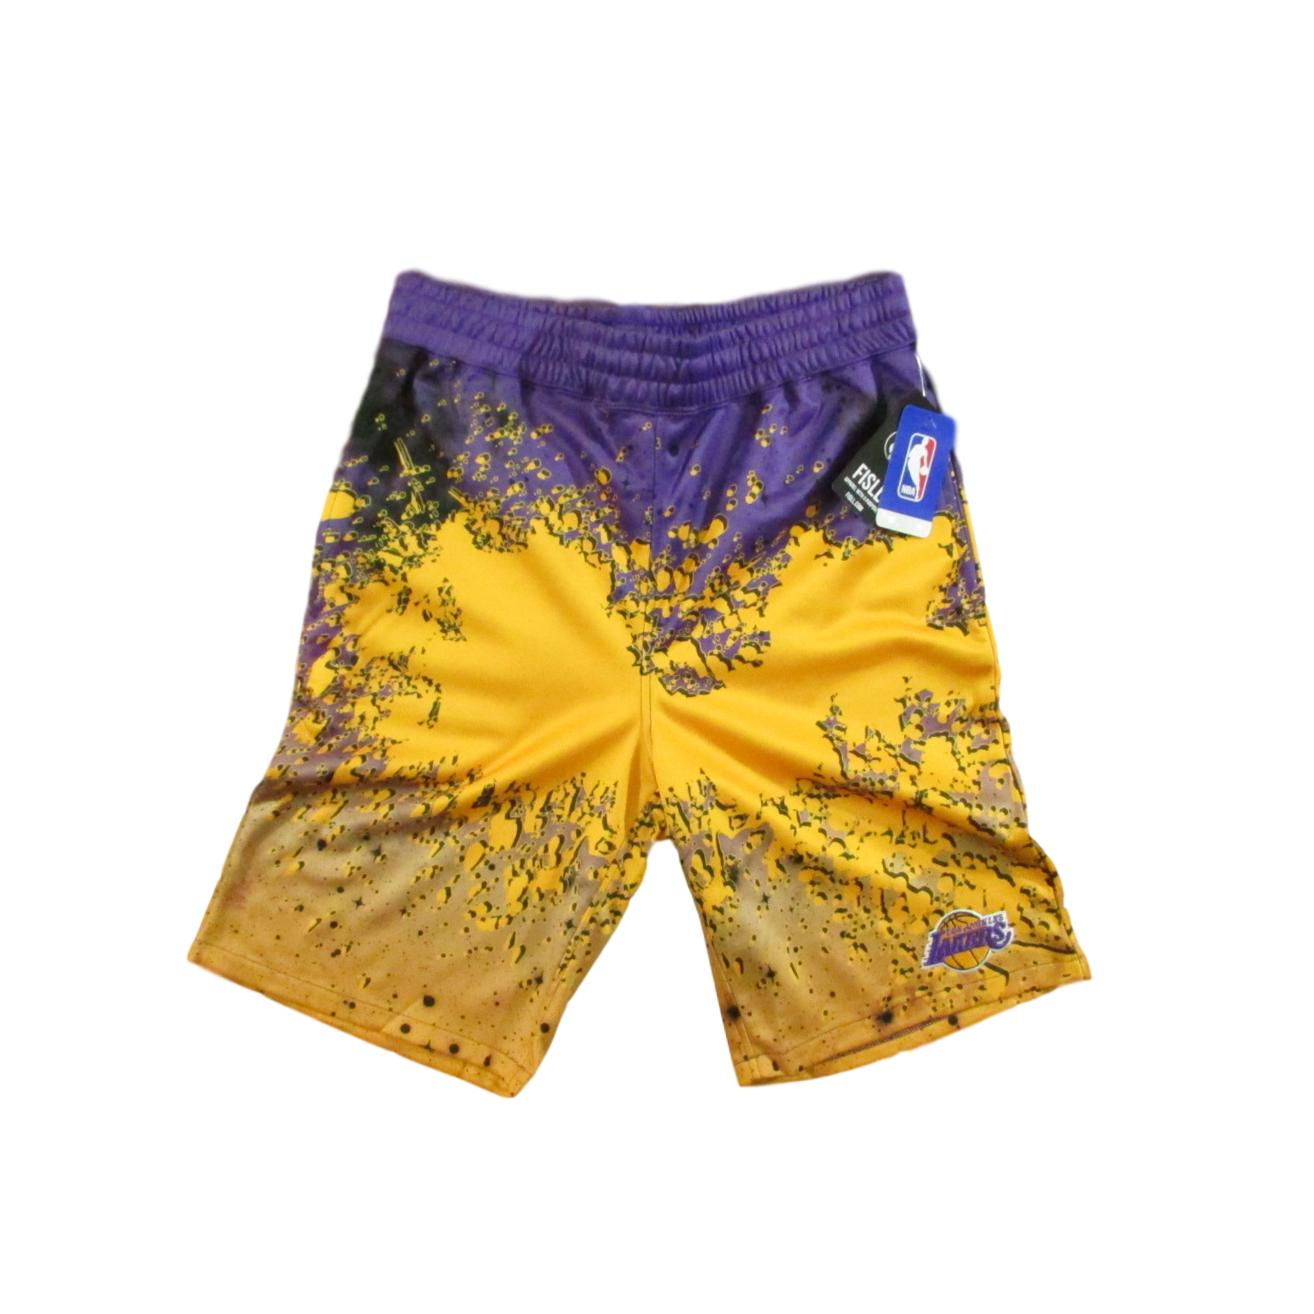 Los Angeles Lakers Paint Splatter Basketball Shorts